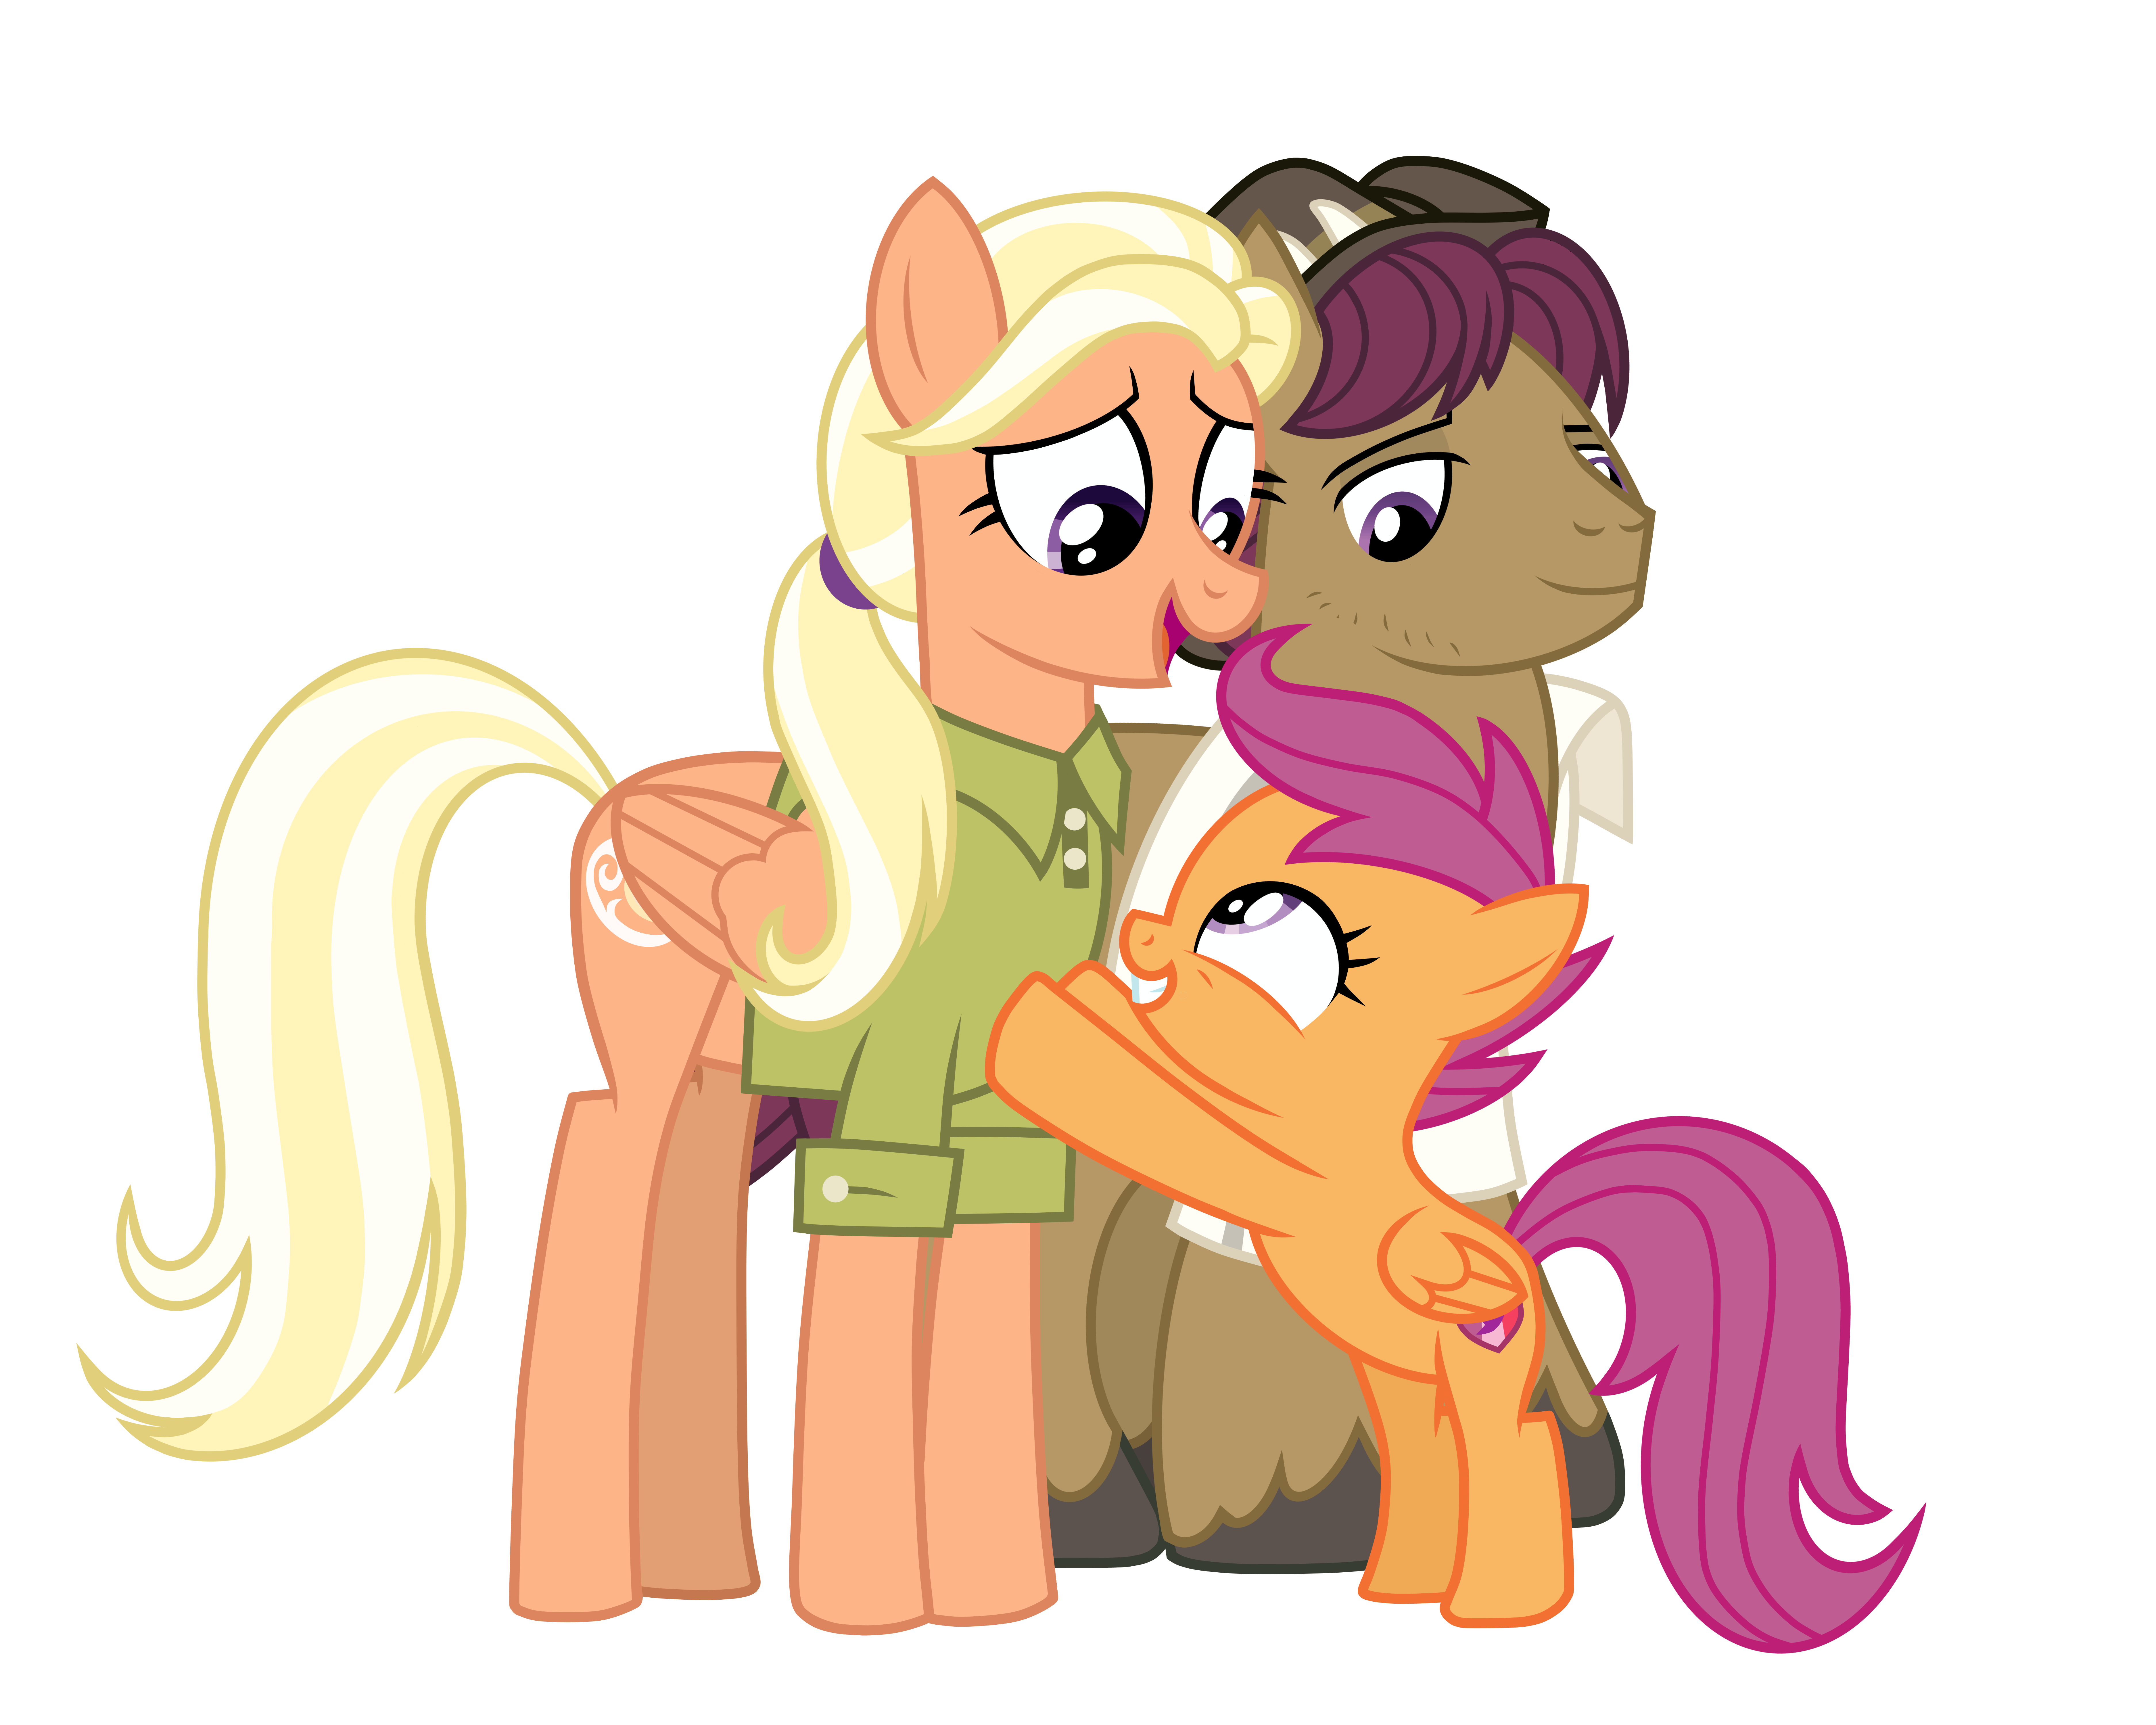 Scootaloo S Family By Emeraldblast63 On Deviantart Scootaloo is a young pegasus pony featured in my little pony: deviantart